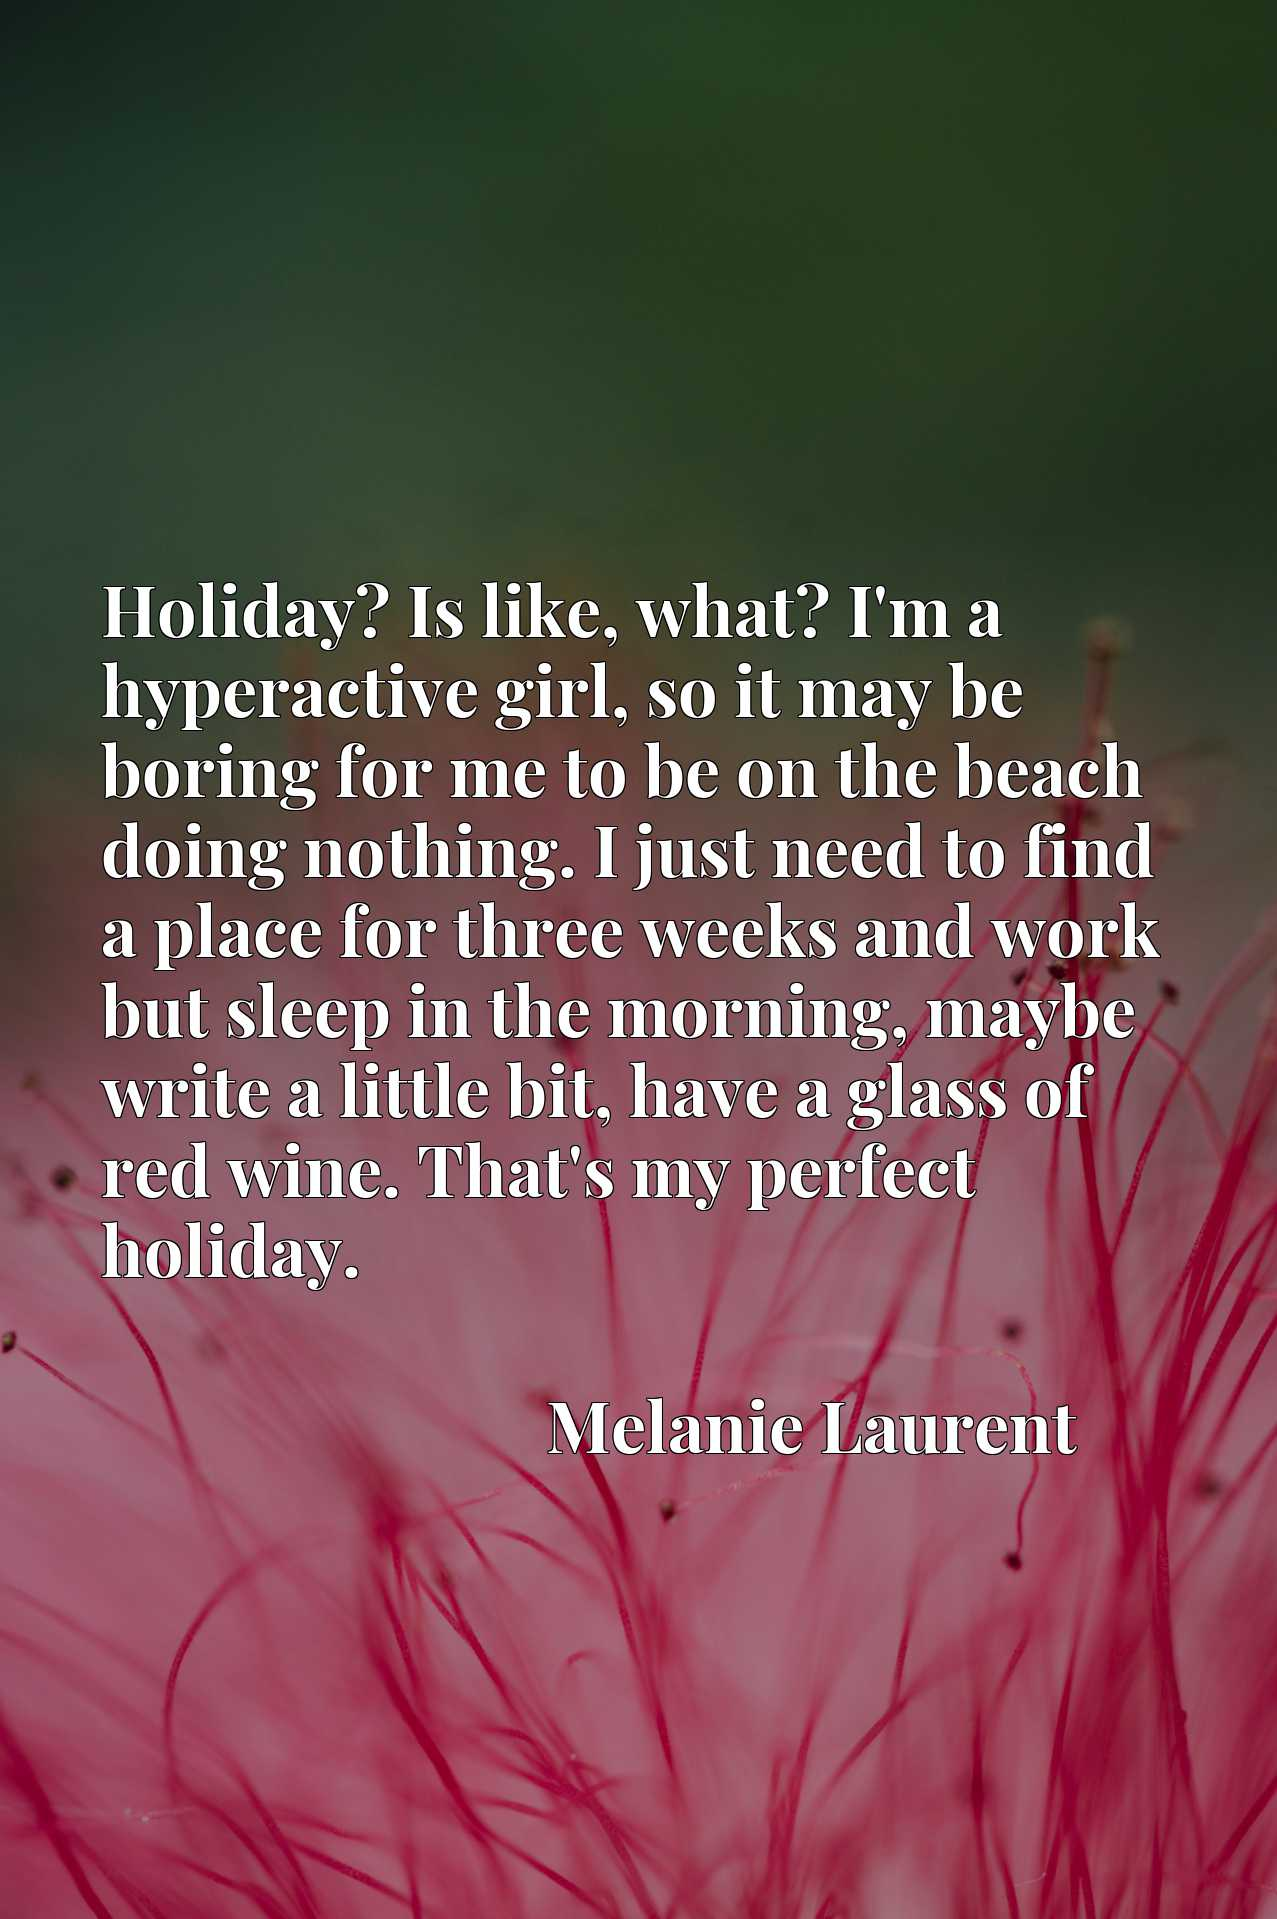 Holiday? Is like, what? I'm a hyperactive girl, so it may be boring for me to be on the beach doing nothing. I just need to find a place for three weeks and work but sleep in the morning, maybe write a little bit, have a glass of red wine. That's my perfect holiday.